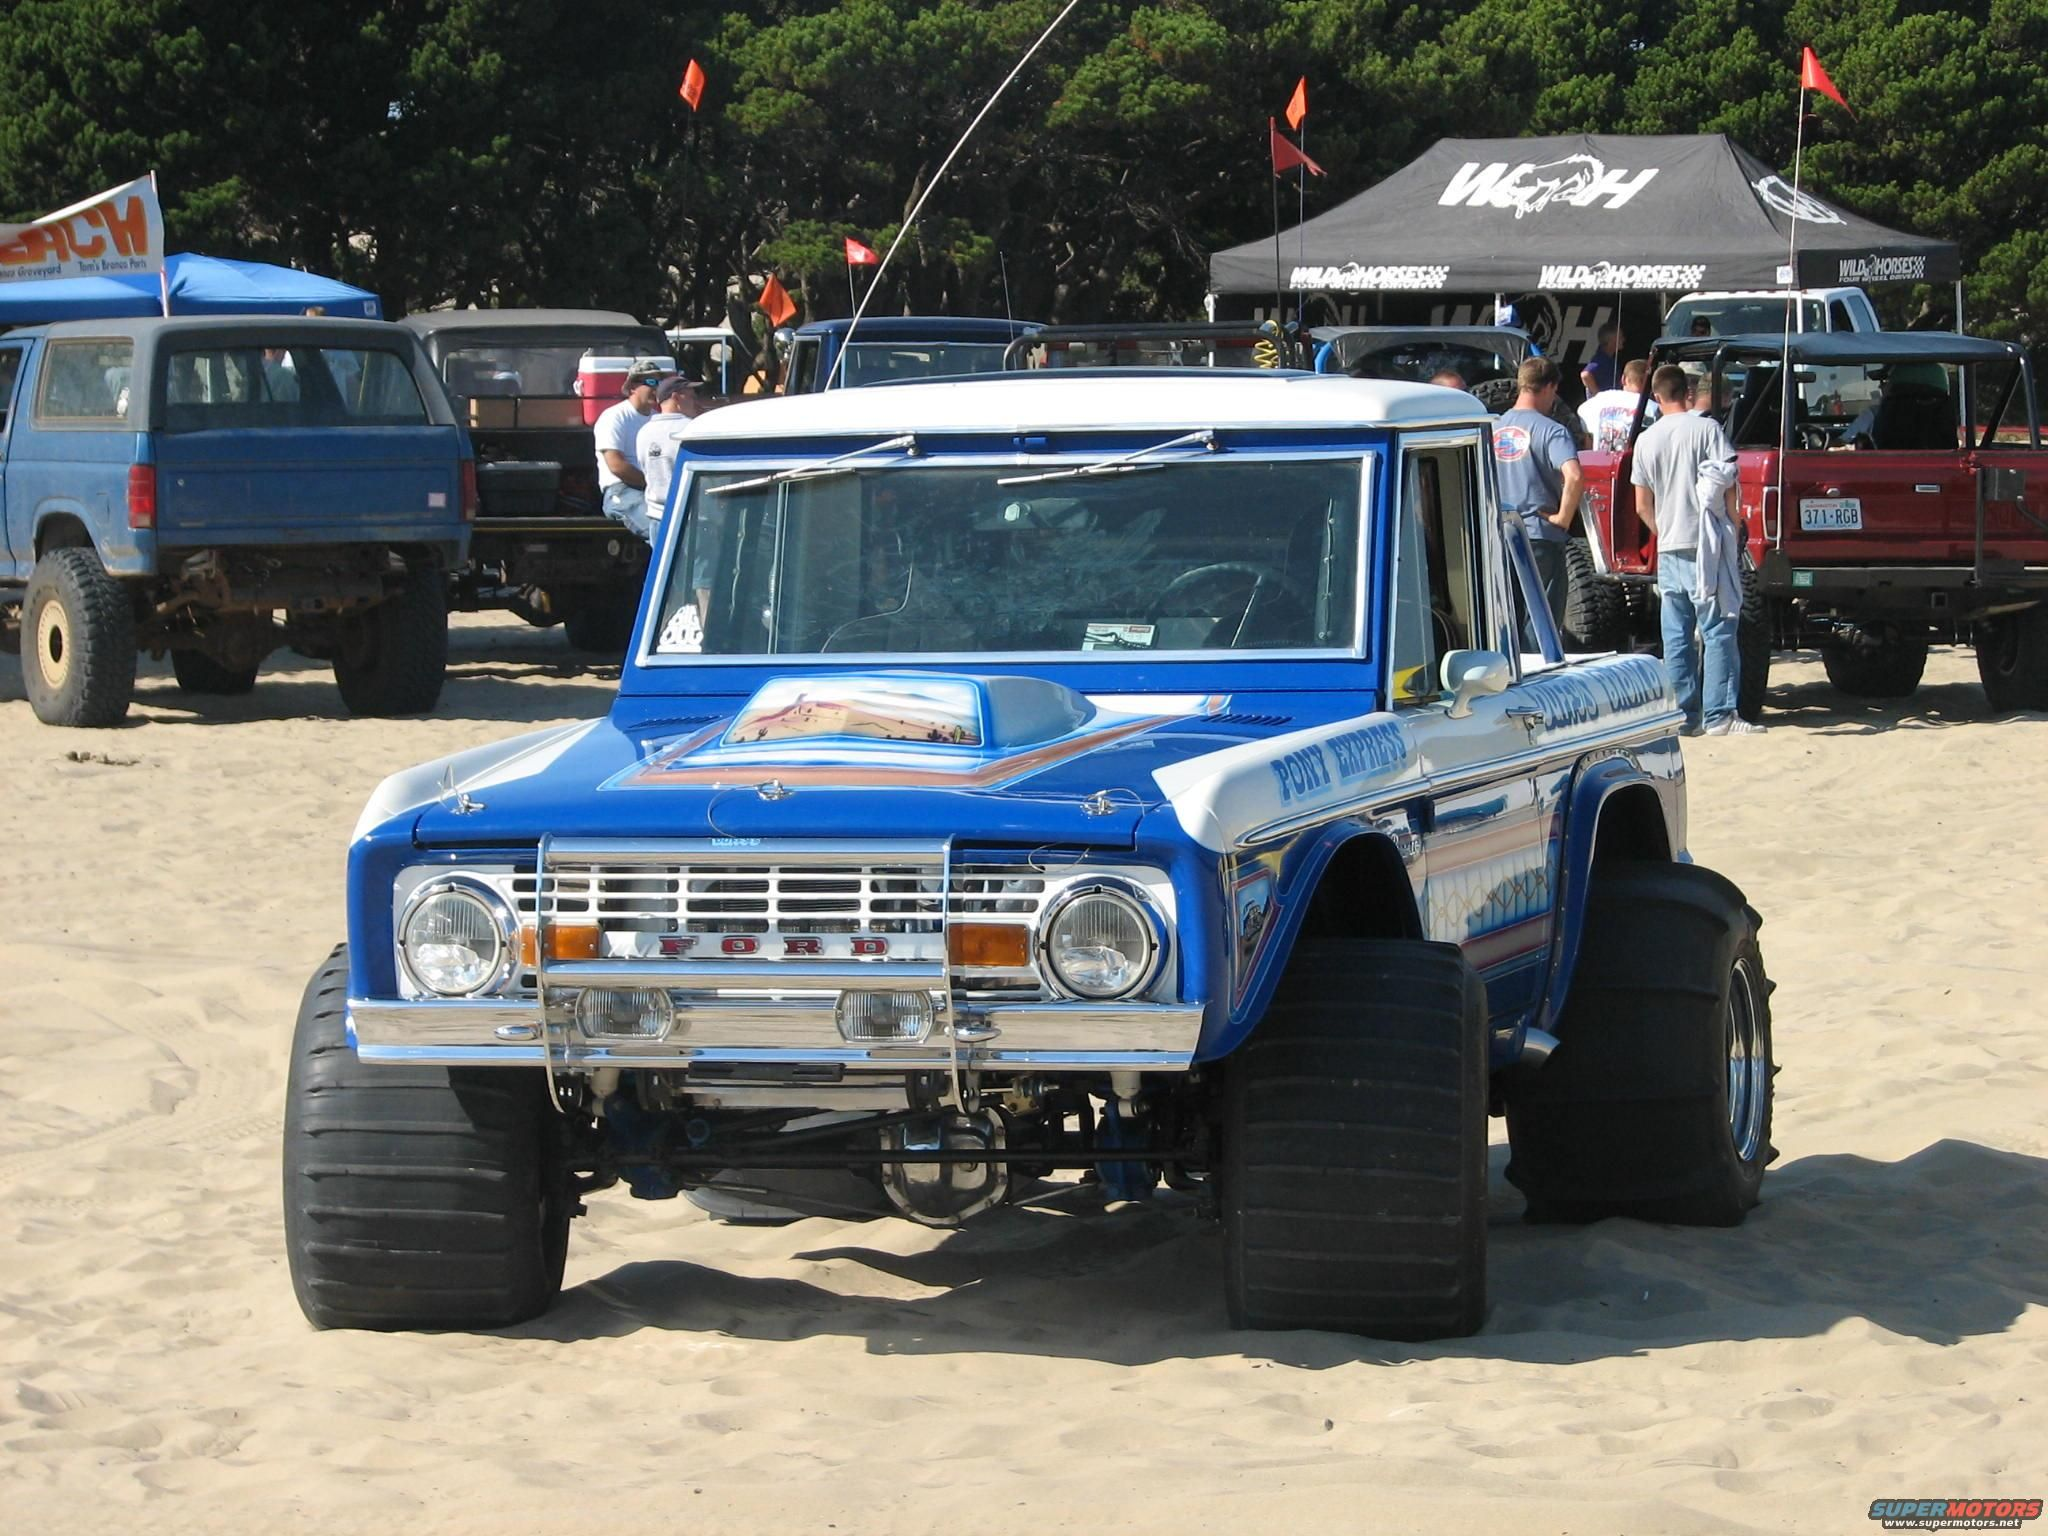 1978 Ford Bronco S.O.B. picture Ford